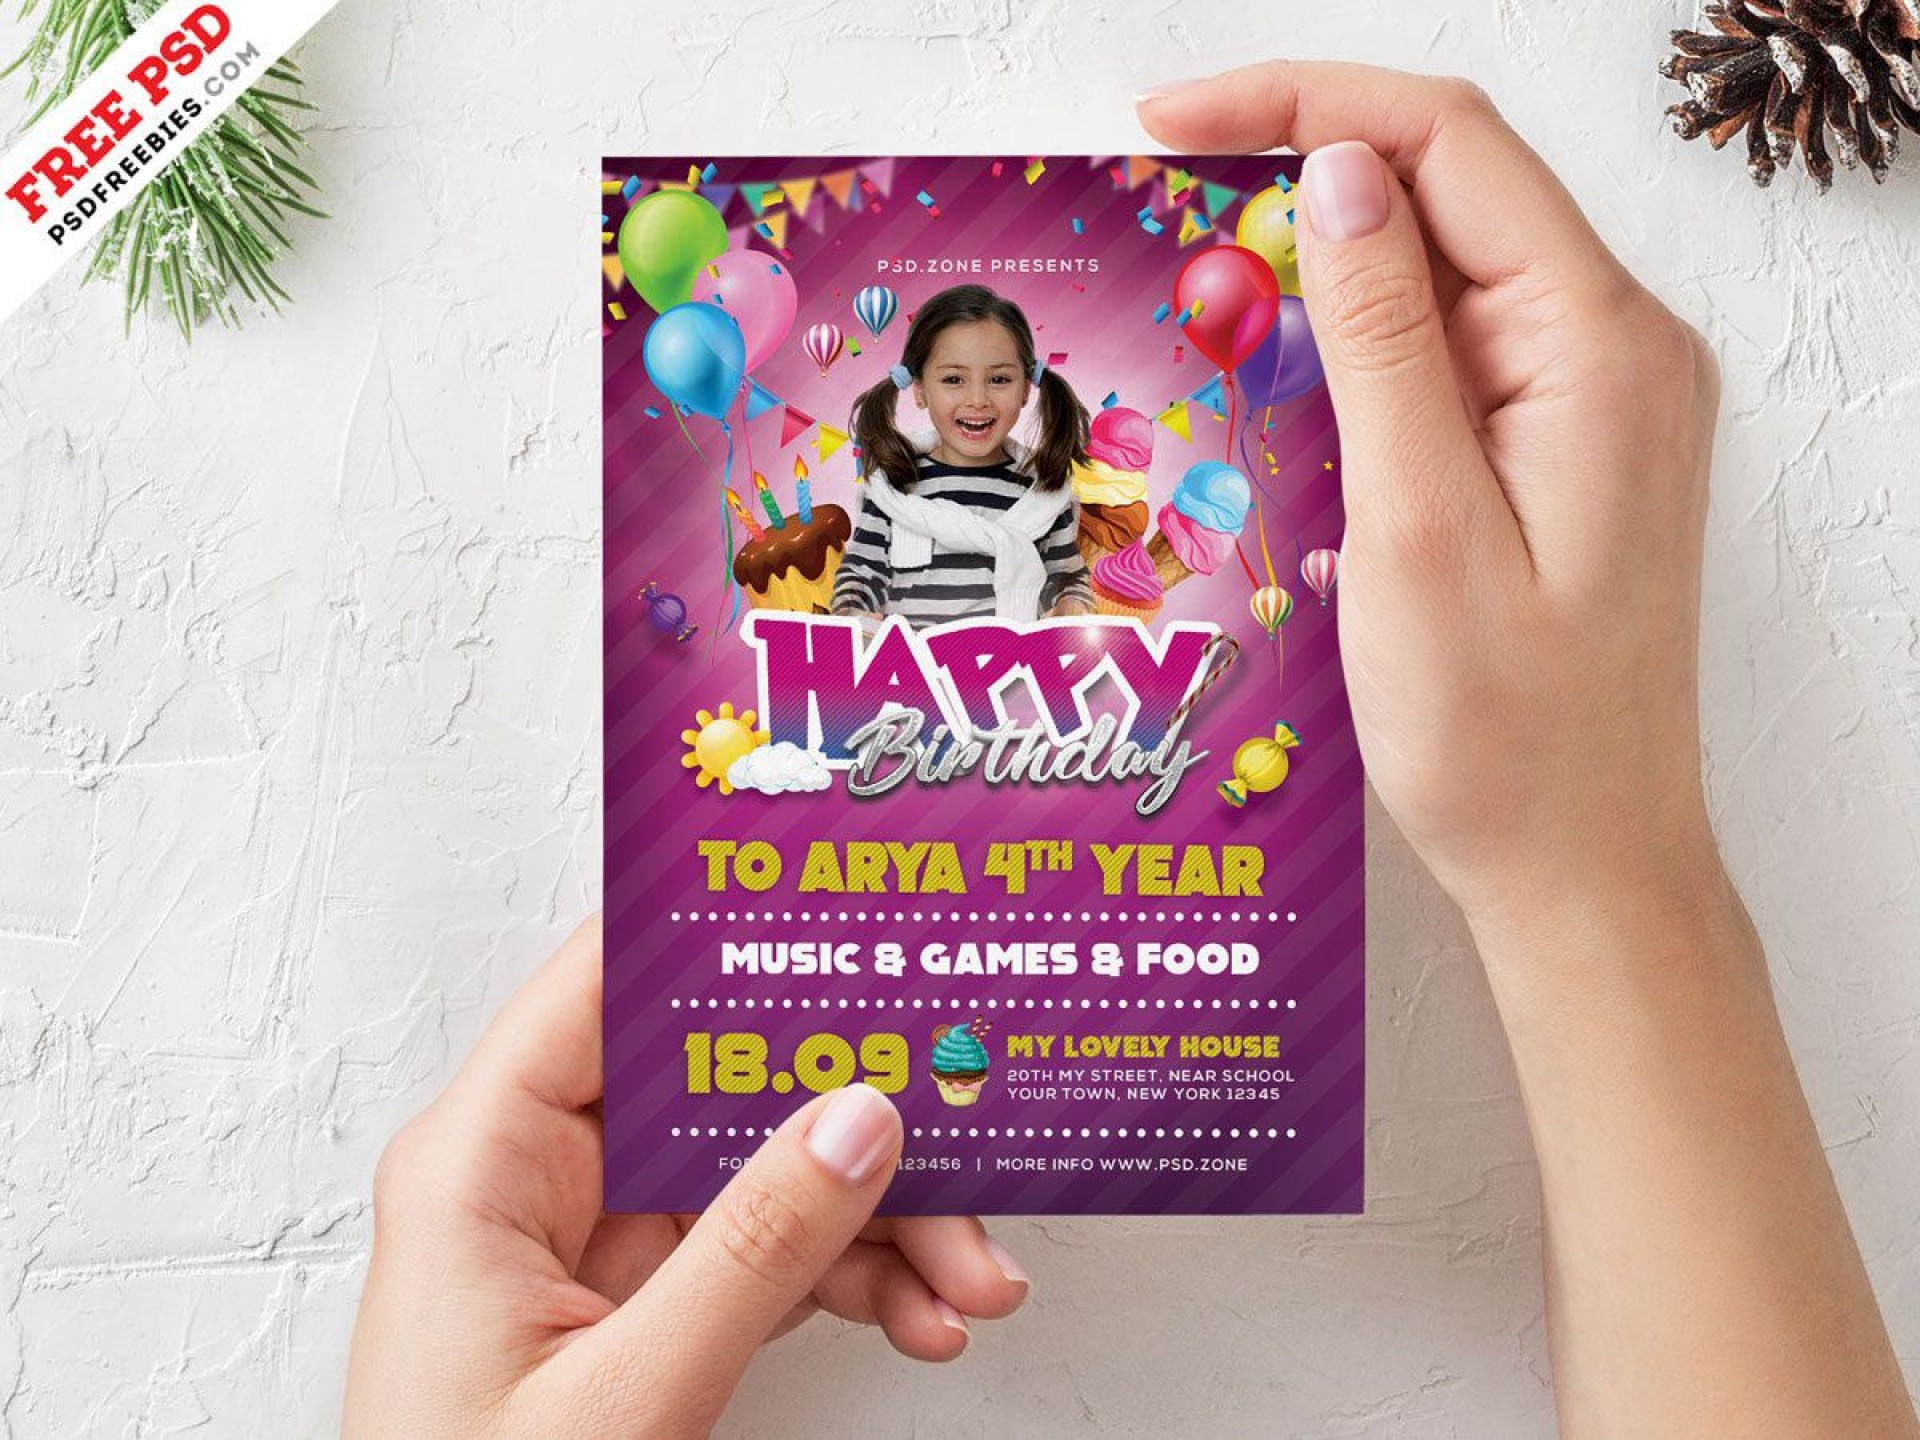 006 Remarkable Birthday Party Invitation Flyer Template Free Download High Def 1920